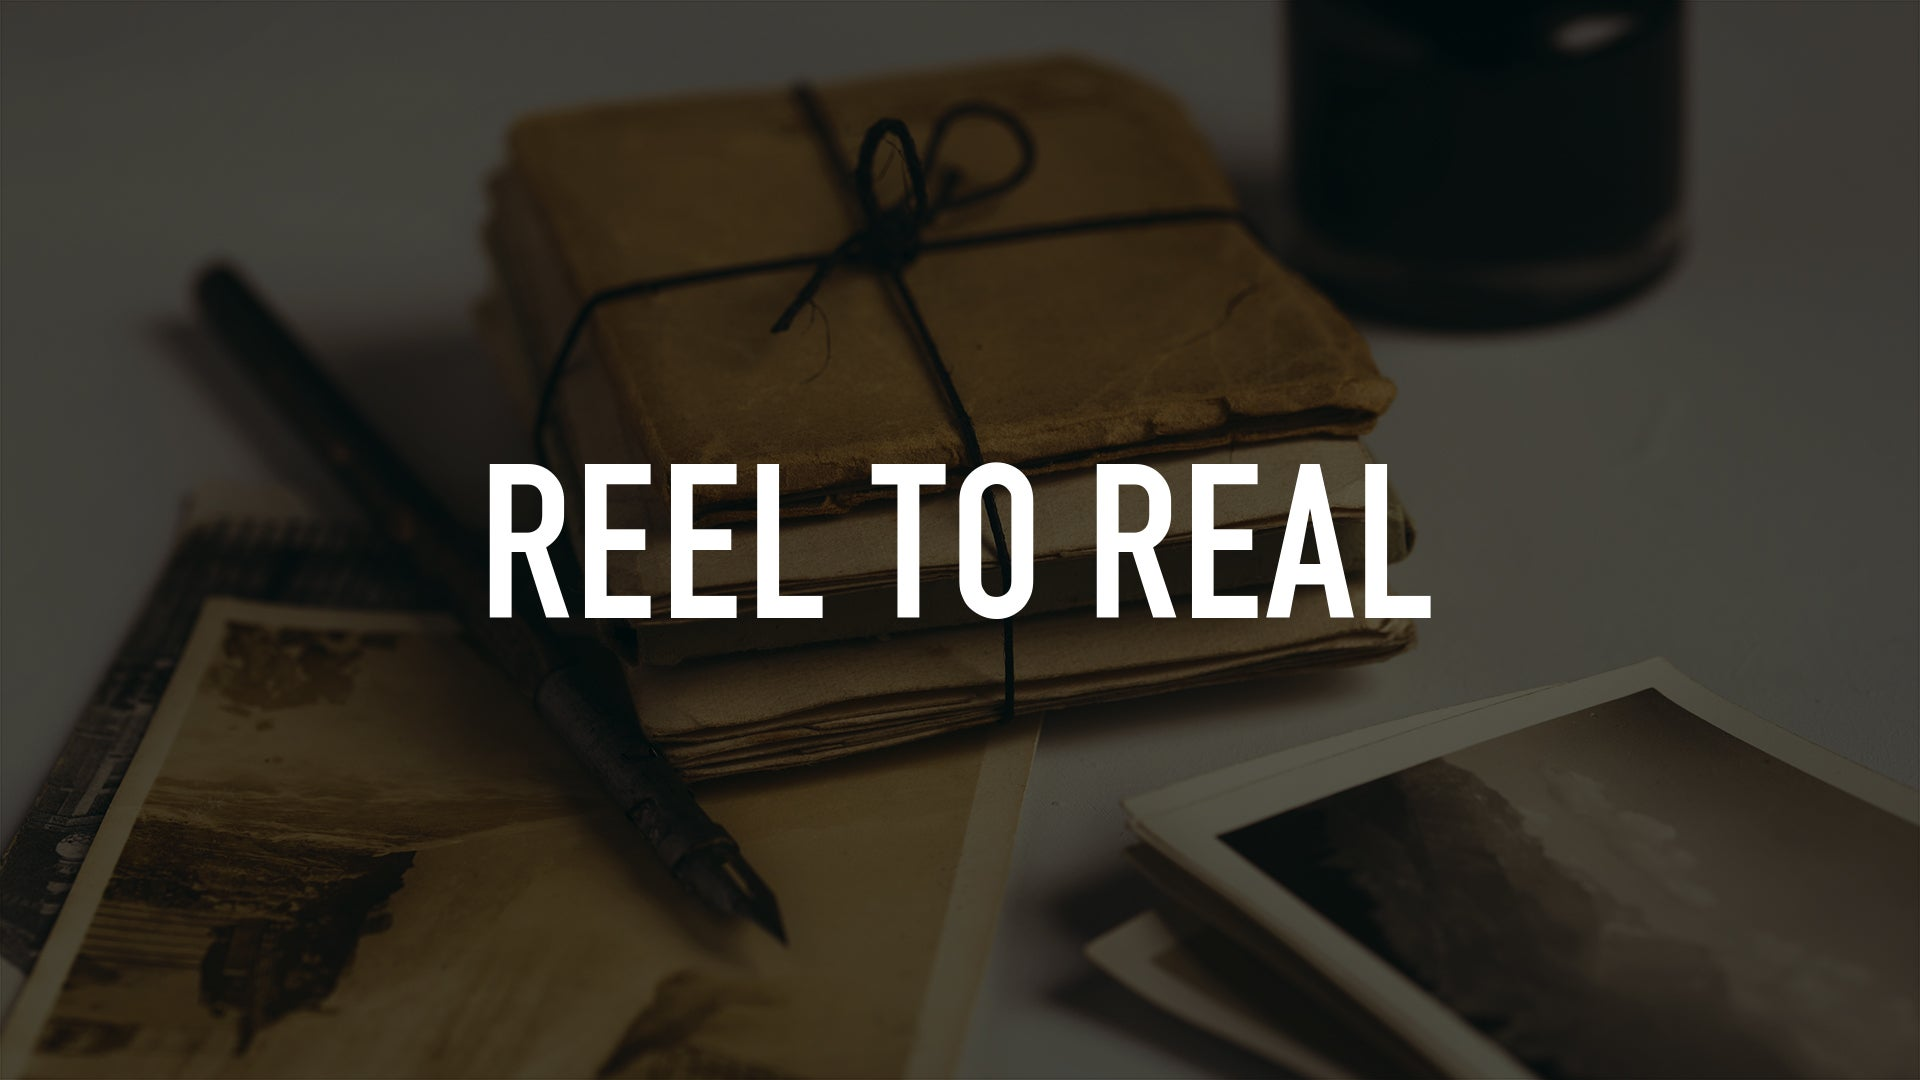 Reel to Real